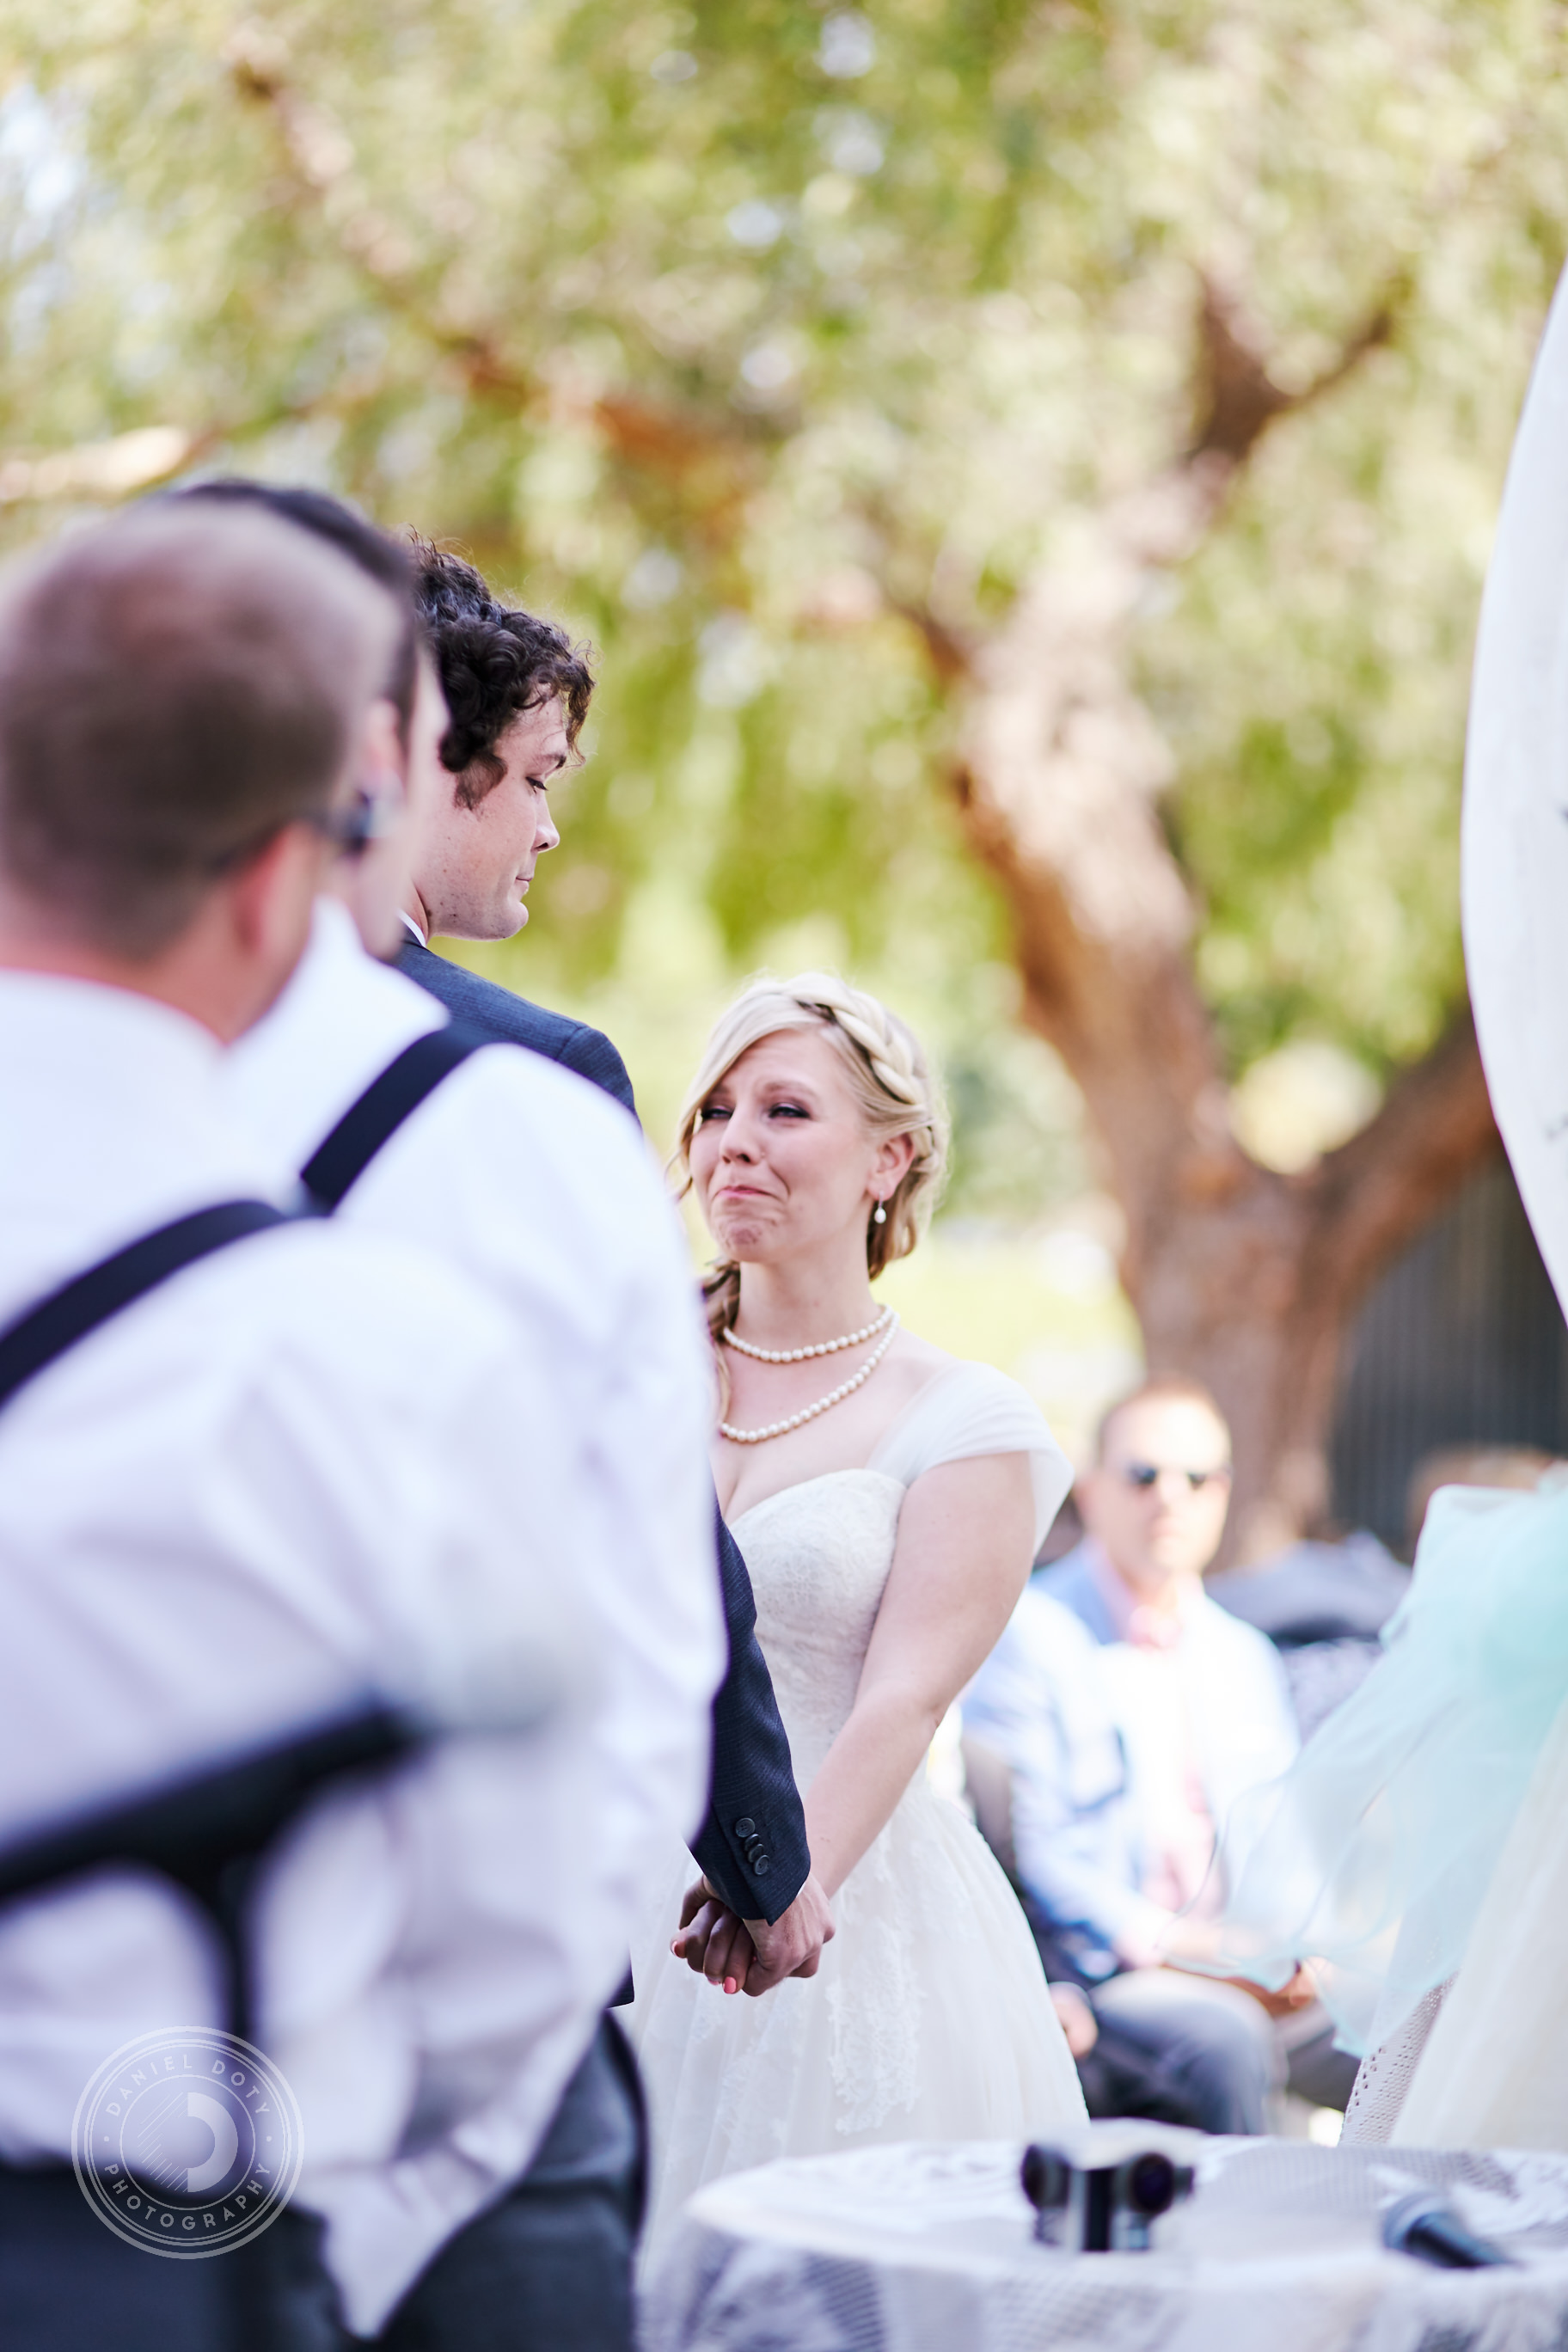 Daniel Doty Photography Erin Colin SoCal Wedding Photographer Strathearn 134.jpg